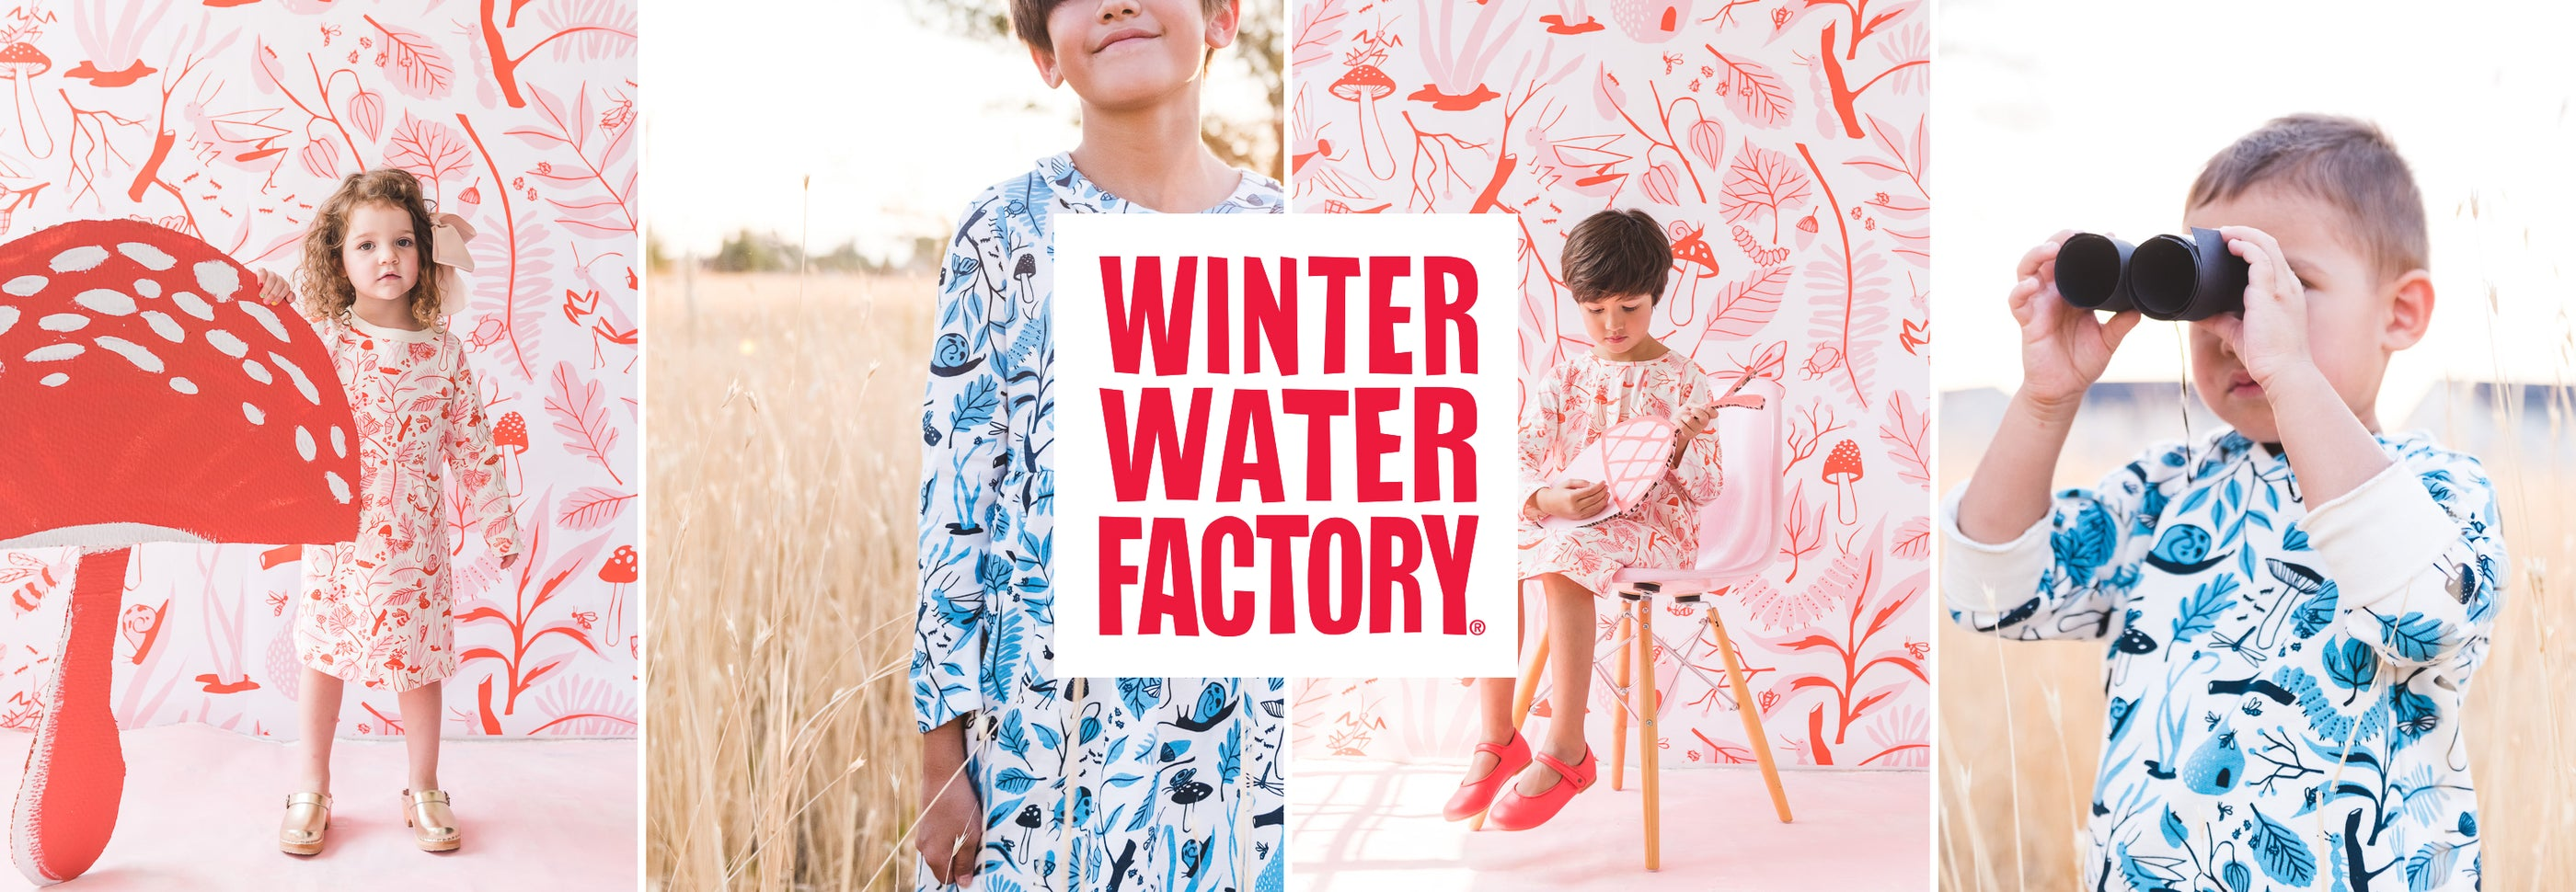 Winter Water Factory